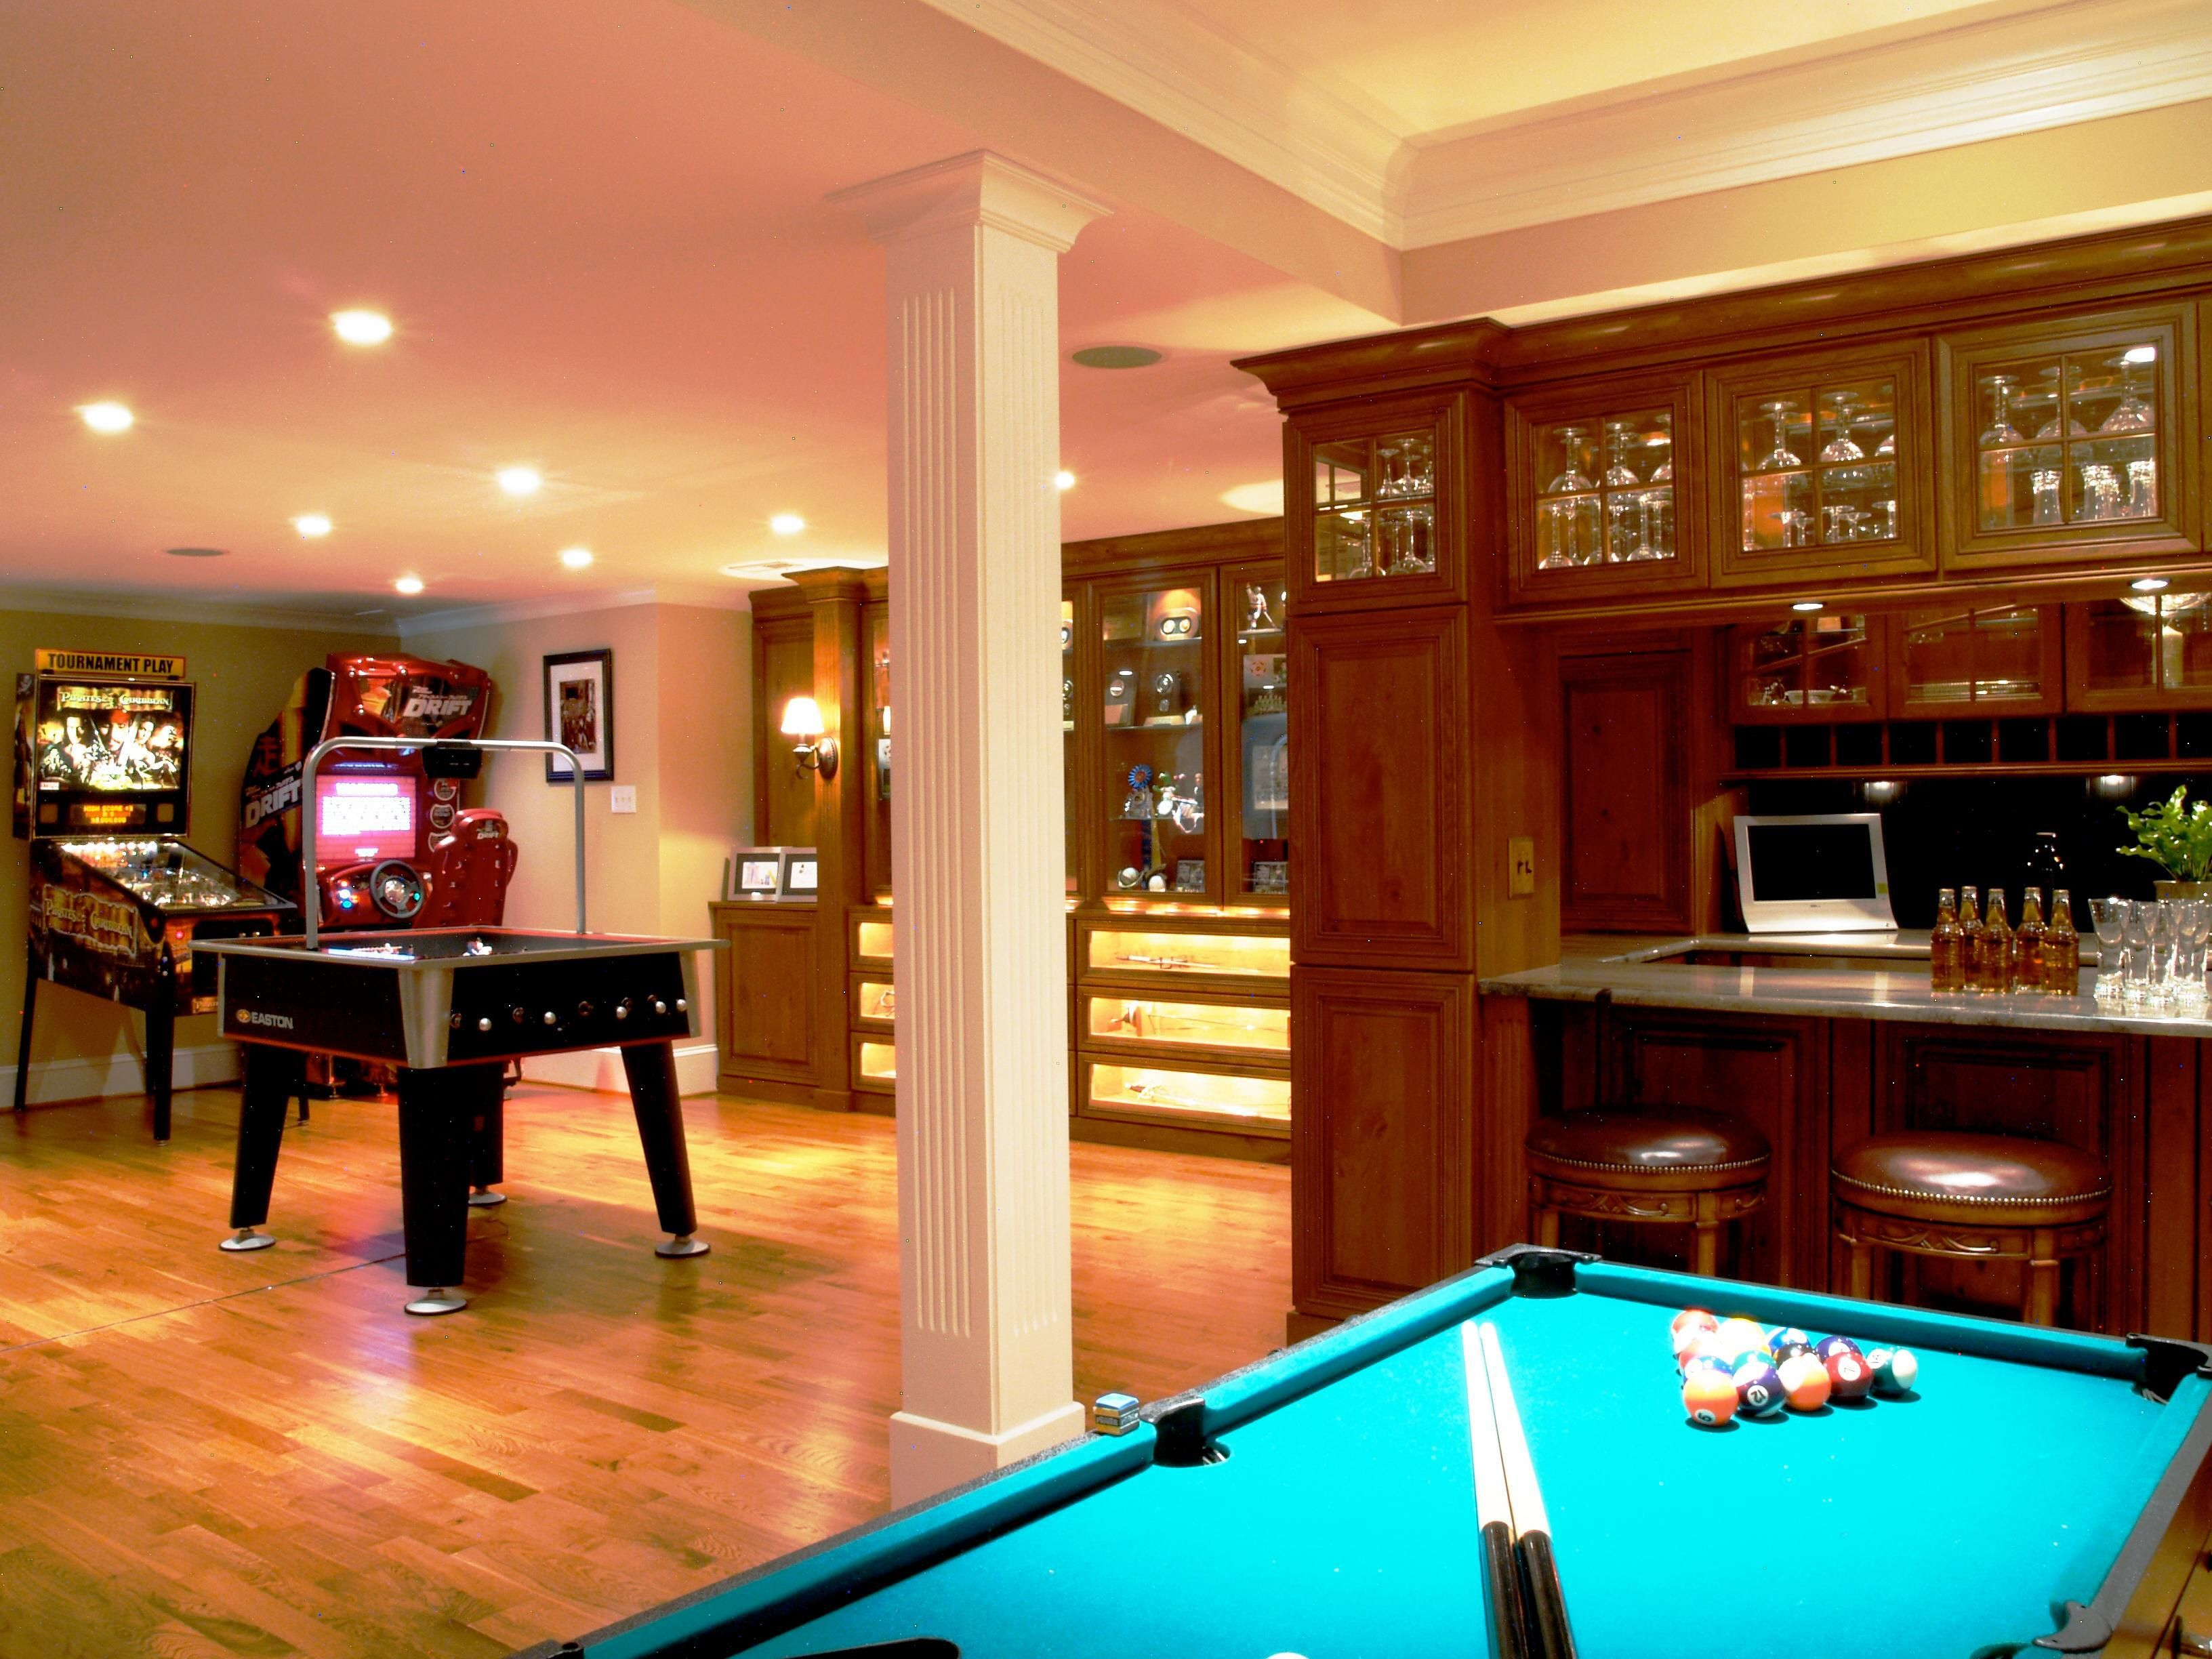 If you have a game room or recreation area in your home, it's important to have good lighting. Game Room Ideas for Teens | Small room design, Game room ...